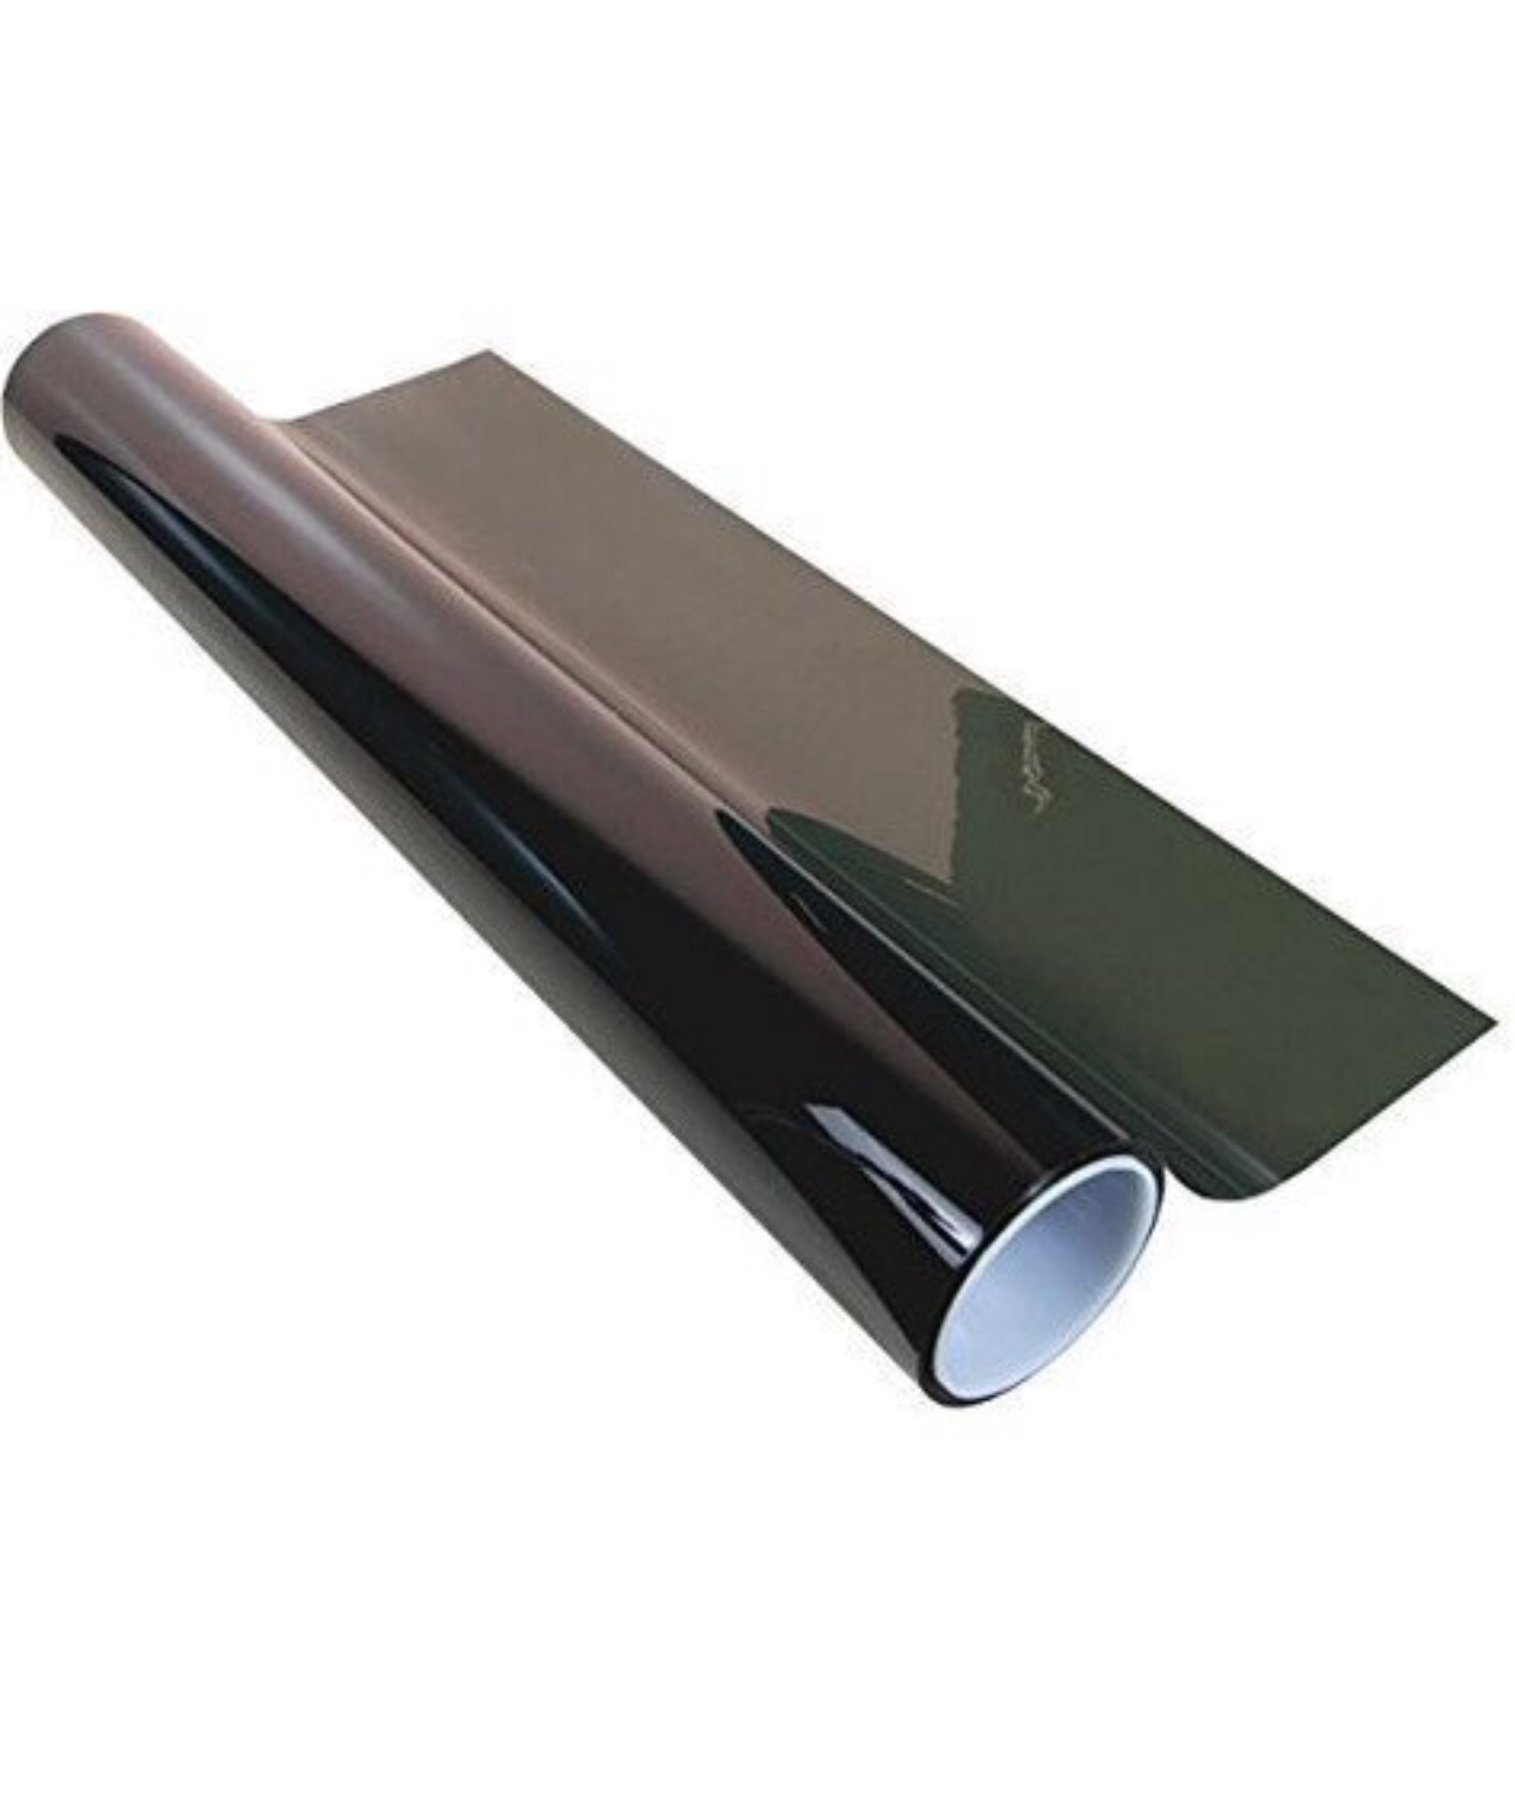 Diablo 2 Ply Window Tint Double Ply Professional Dark Charcoal 20% Tint Roll Self Adhesive Tint Film Roll for Car Windows - 24'' X 100'